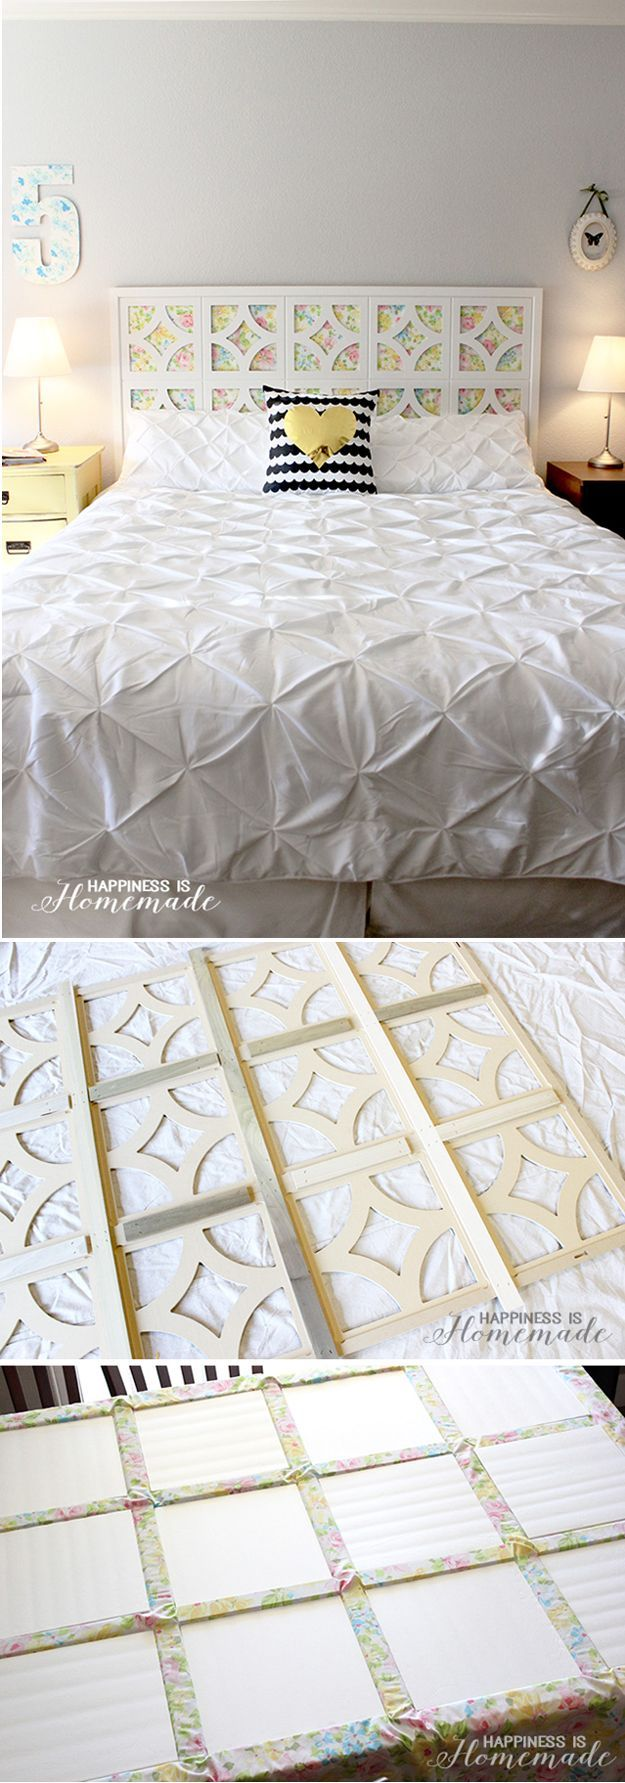 Headboard Alternative Ideas Best 20 Fabric Headboards Ideas On Pinterest Diy Fabric